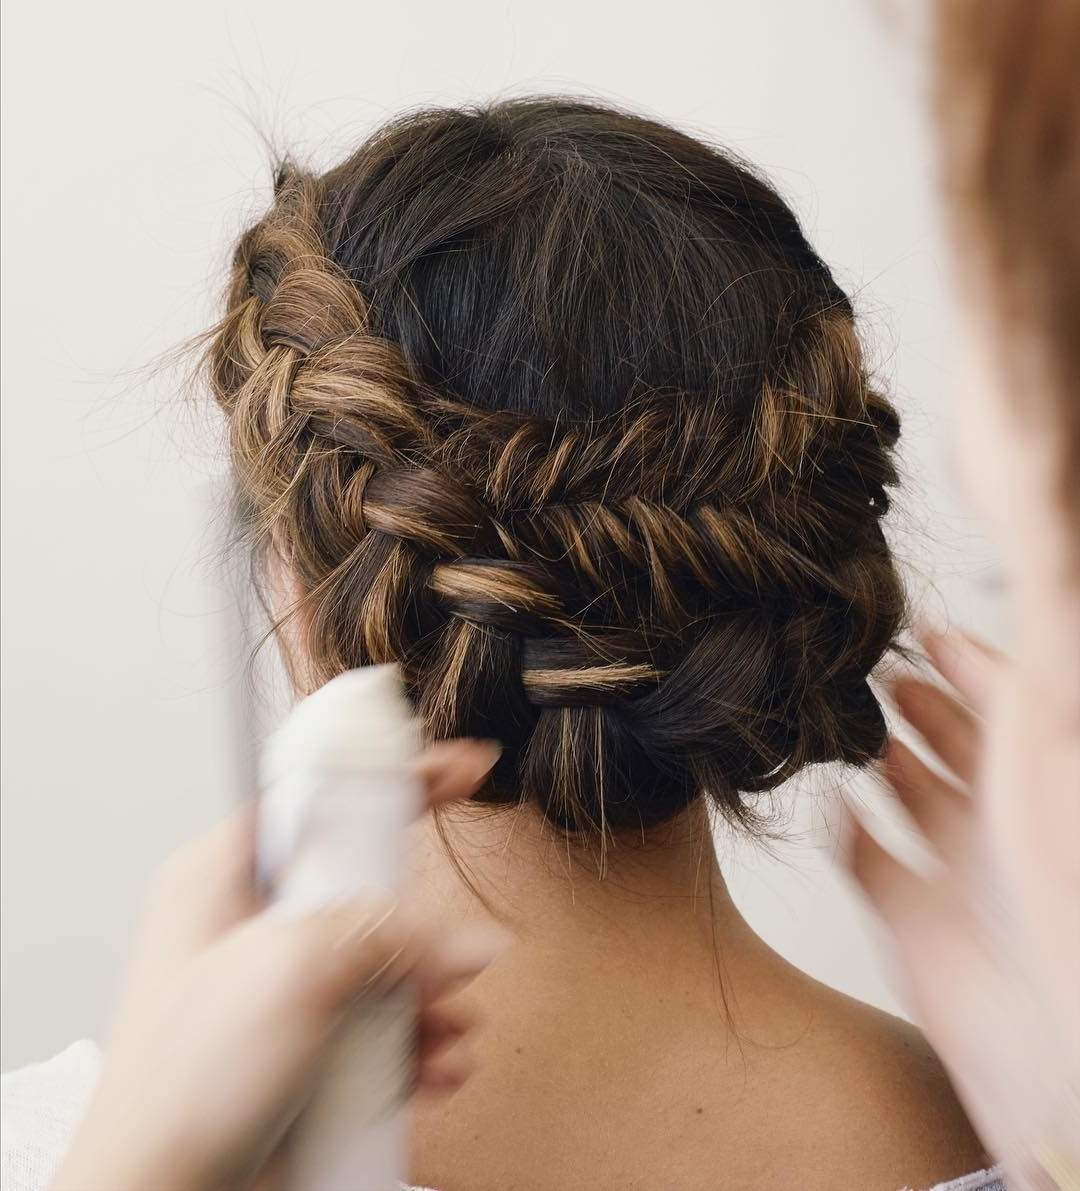 Brides Intended For Newest Classic Bridesmaid Ponytail Hairstyles (View 9 of 20)